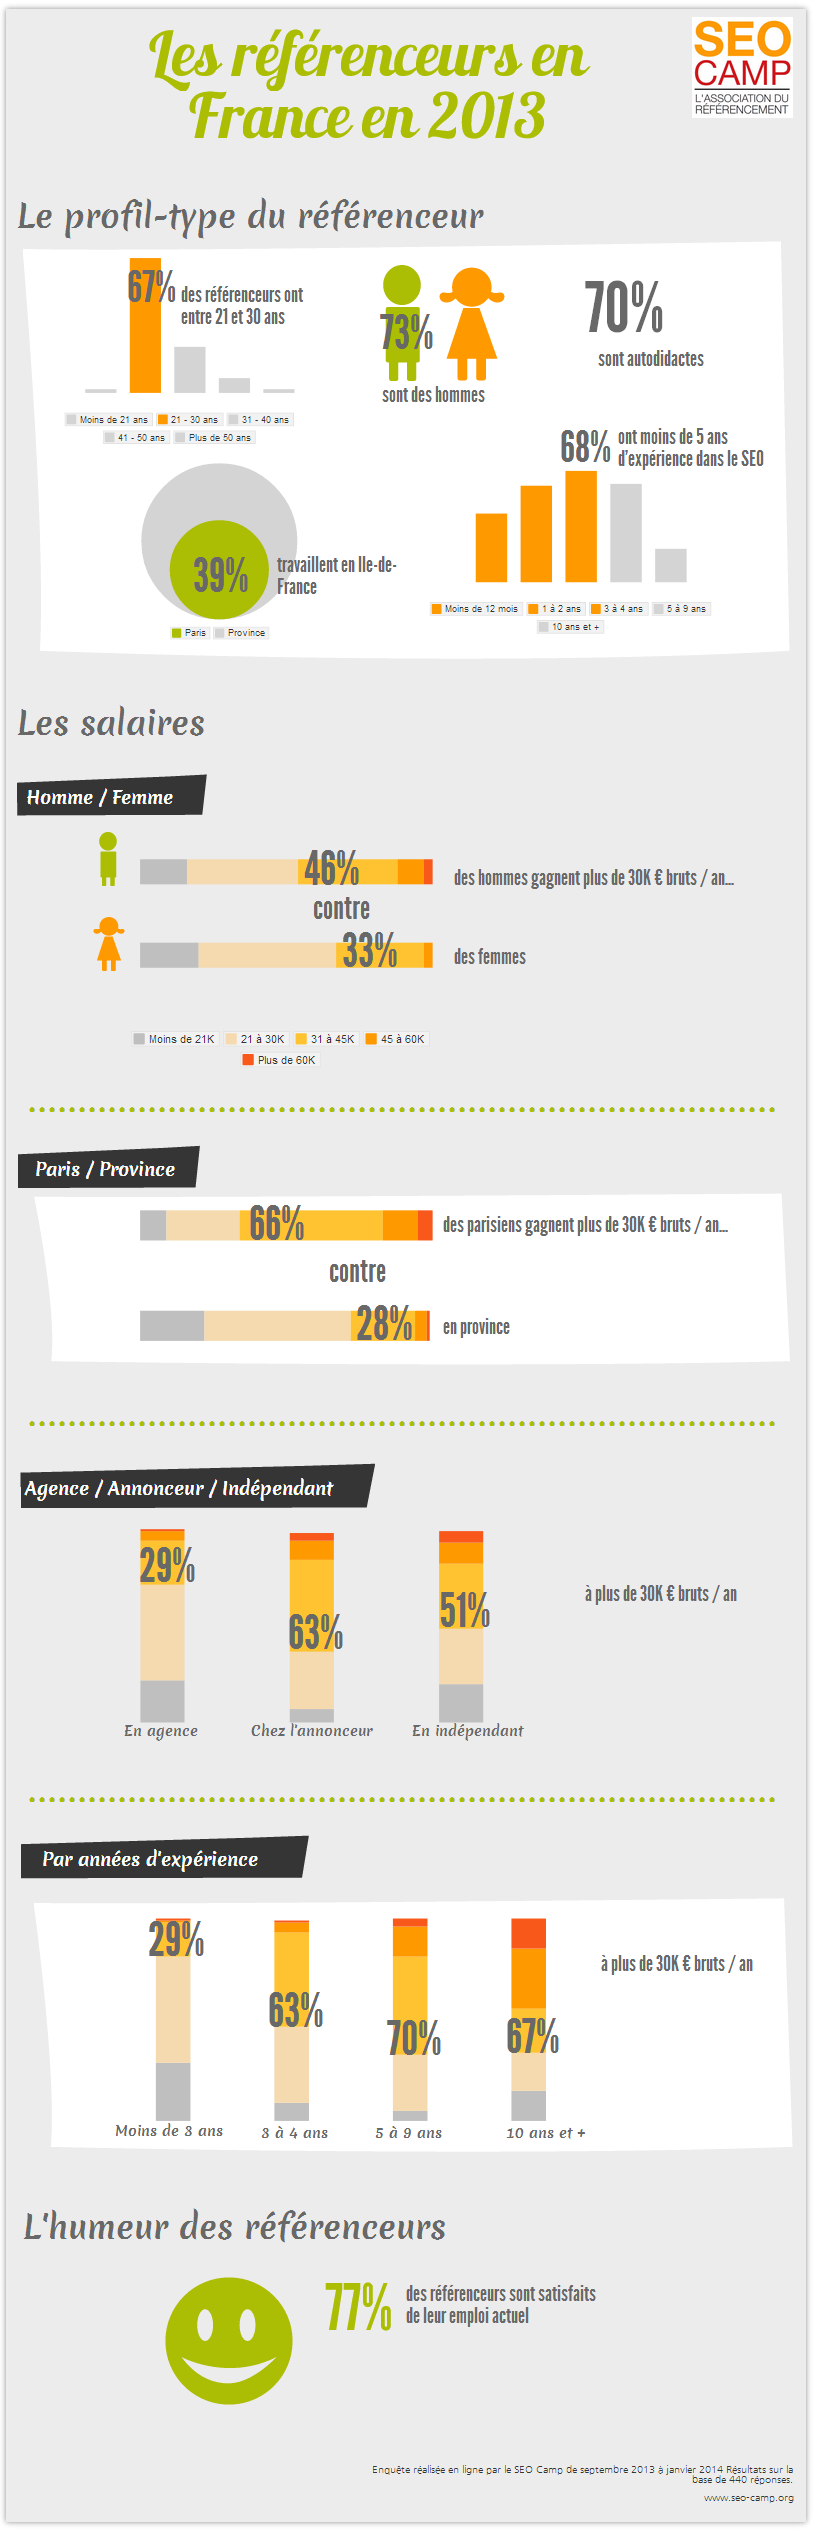 infographie-referenceurs-2013-SEO-Camp